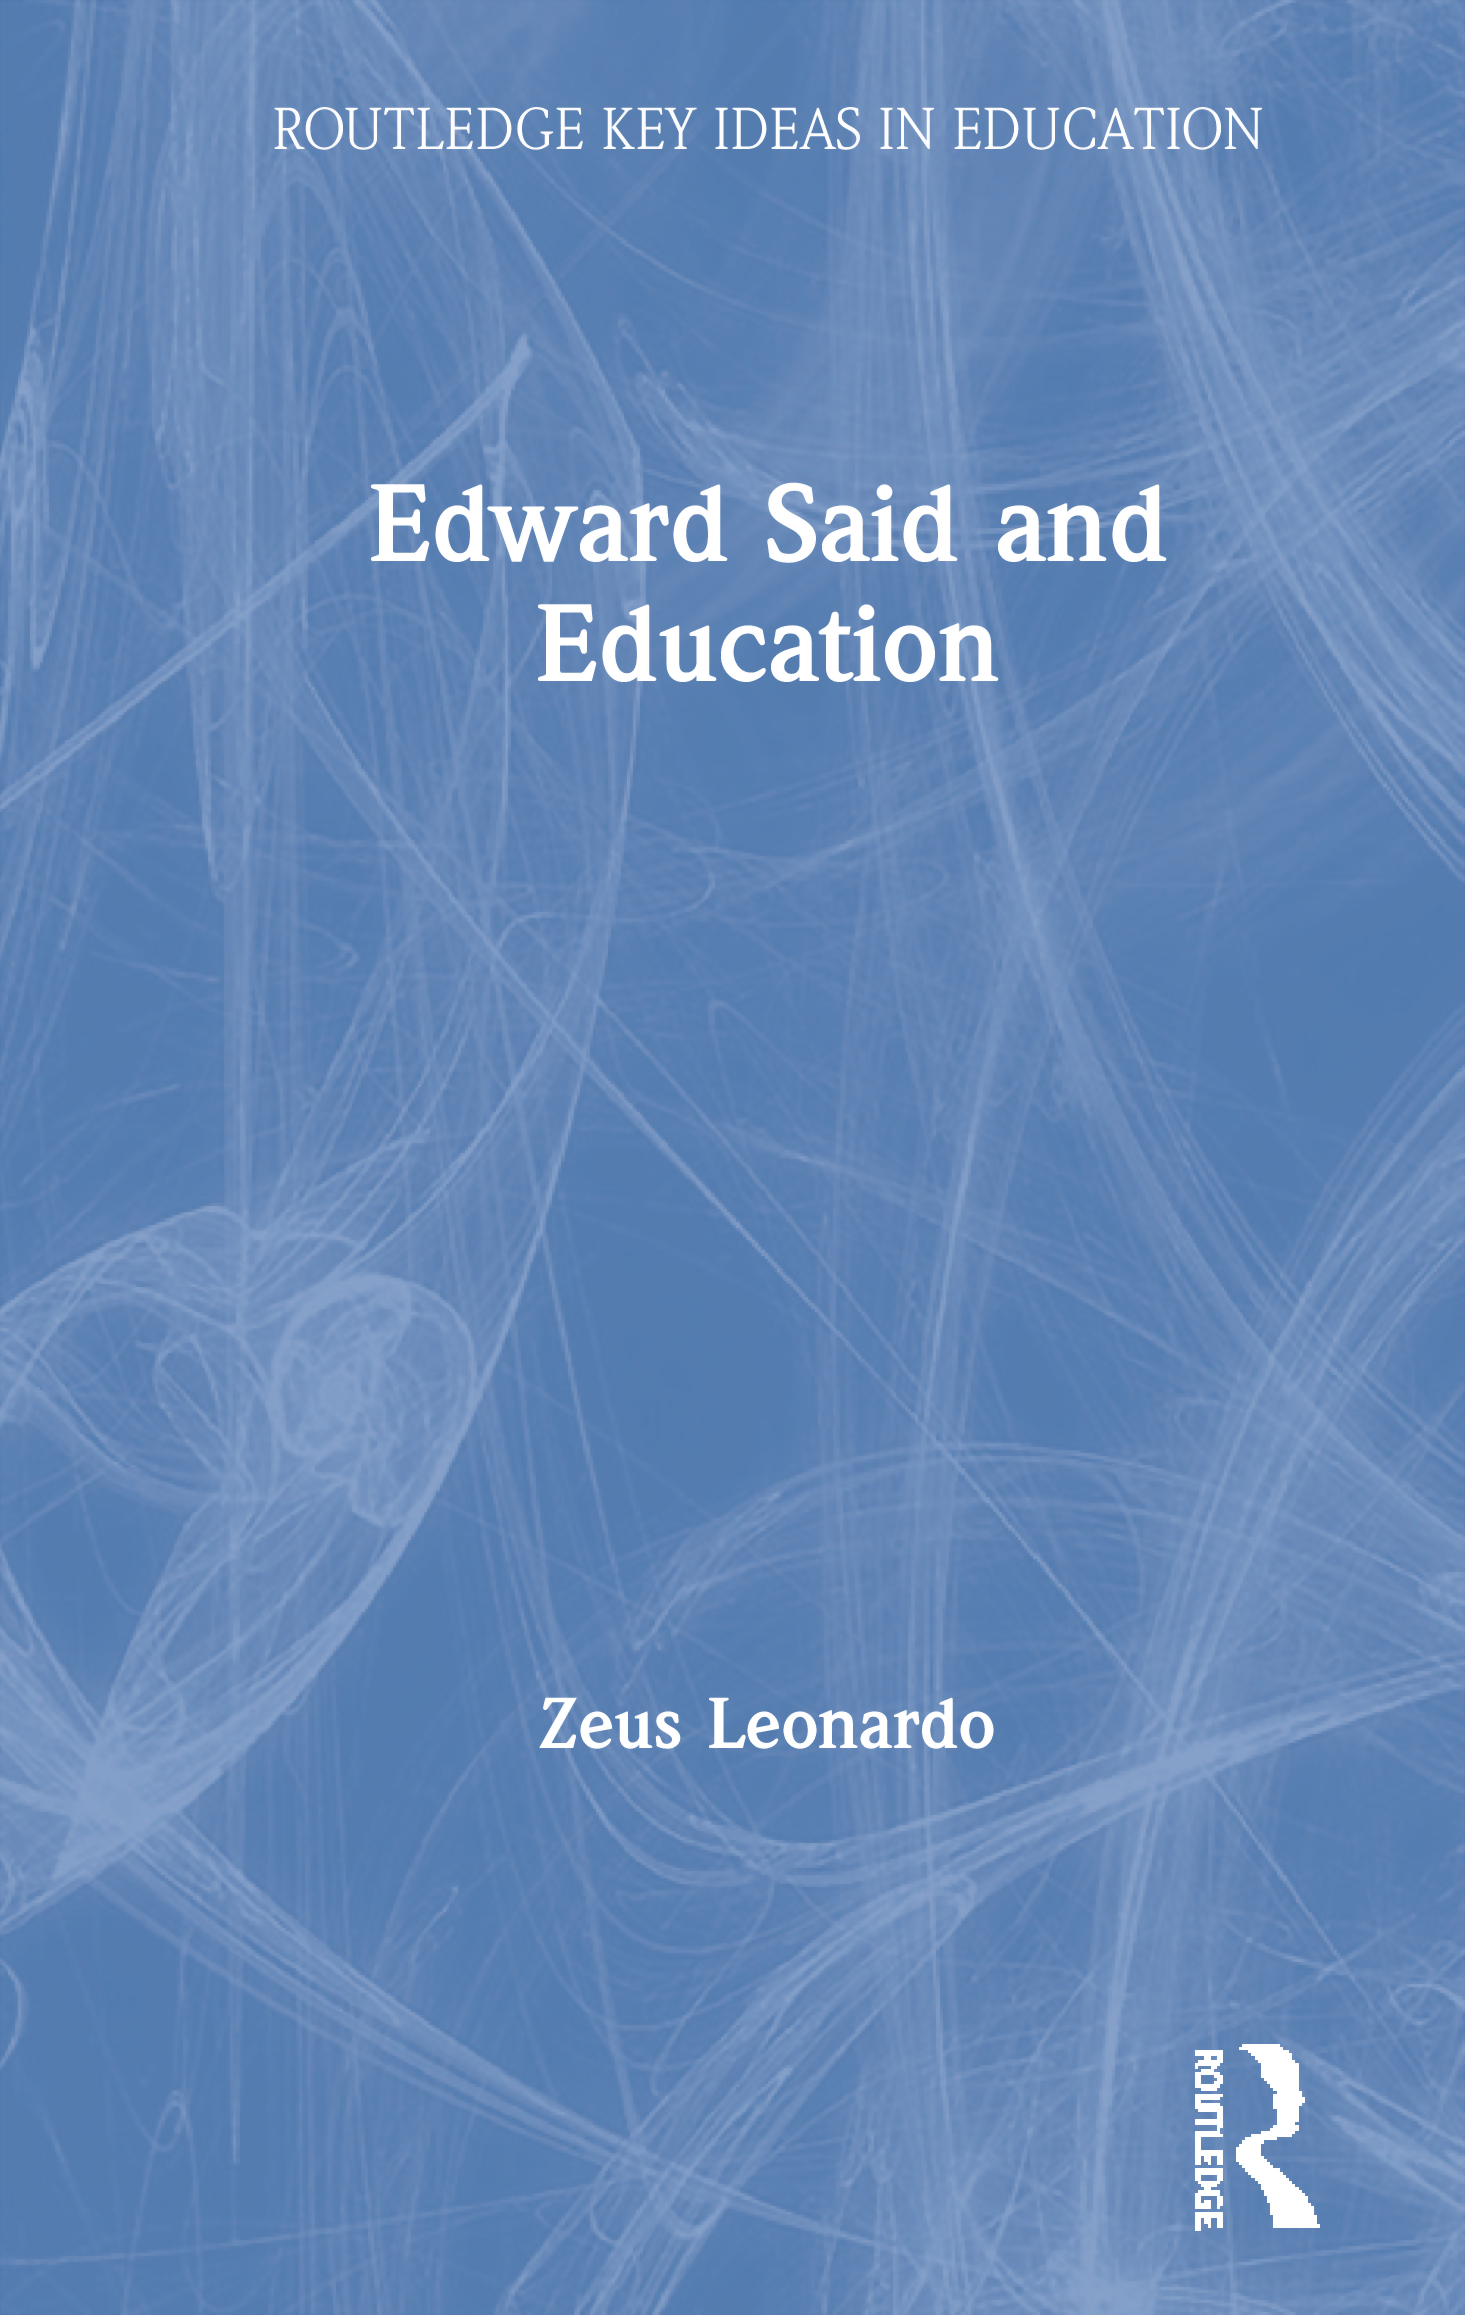 Edward Said and Education book cover